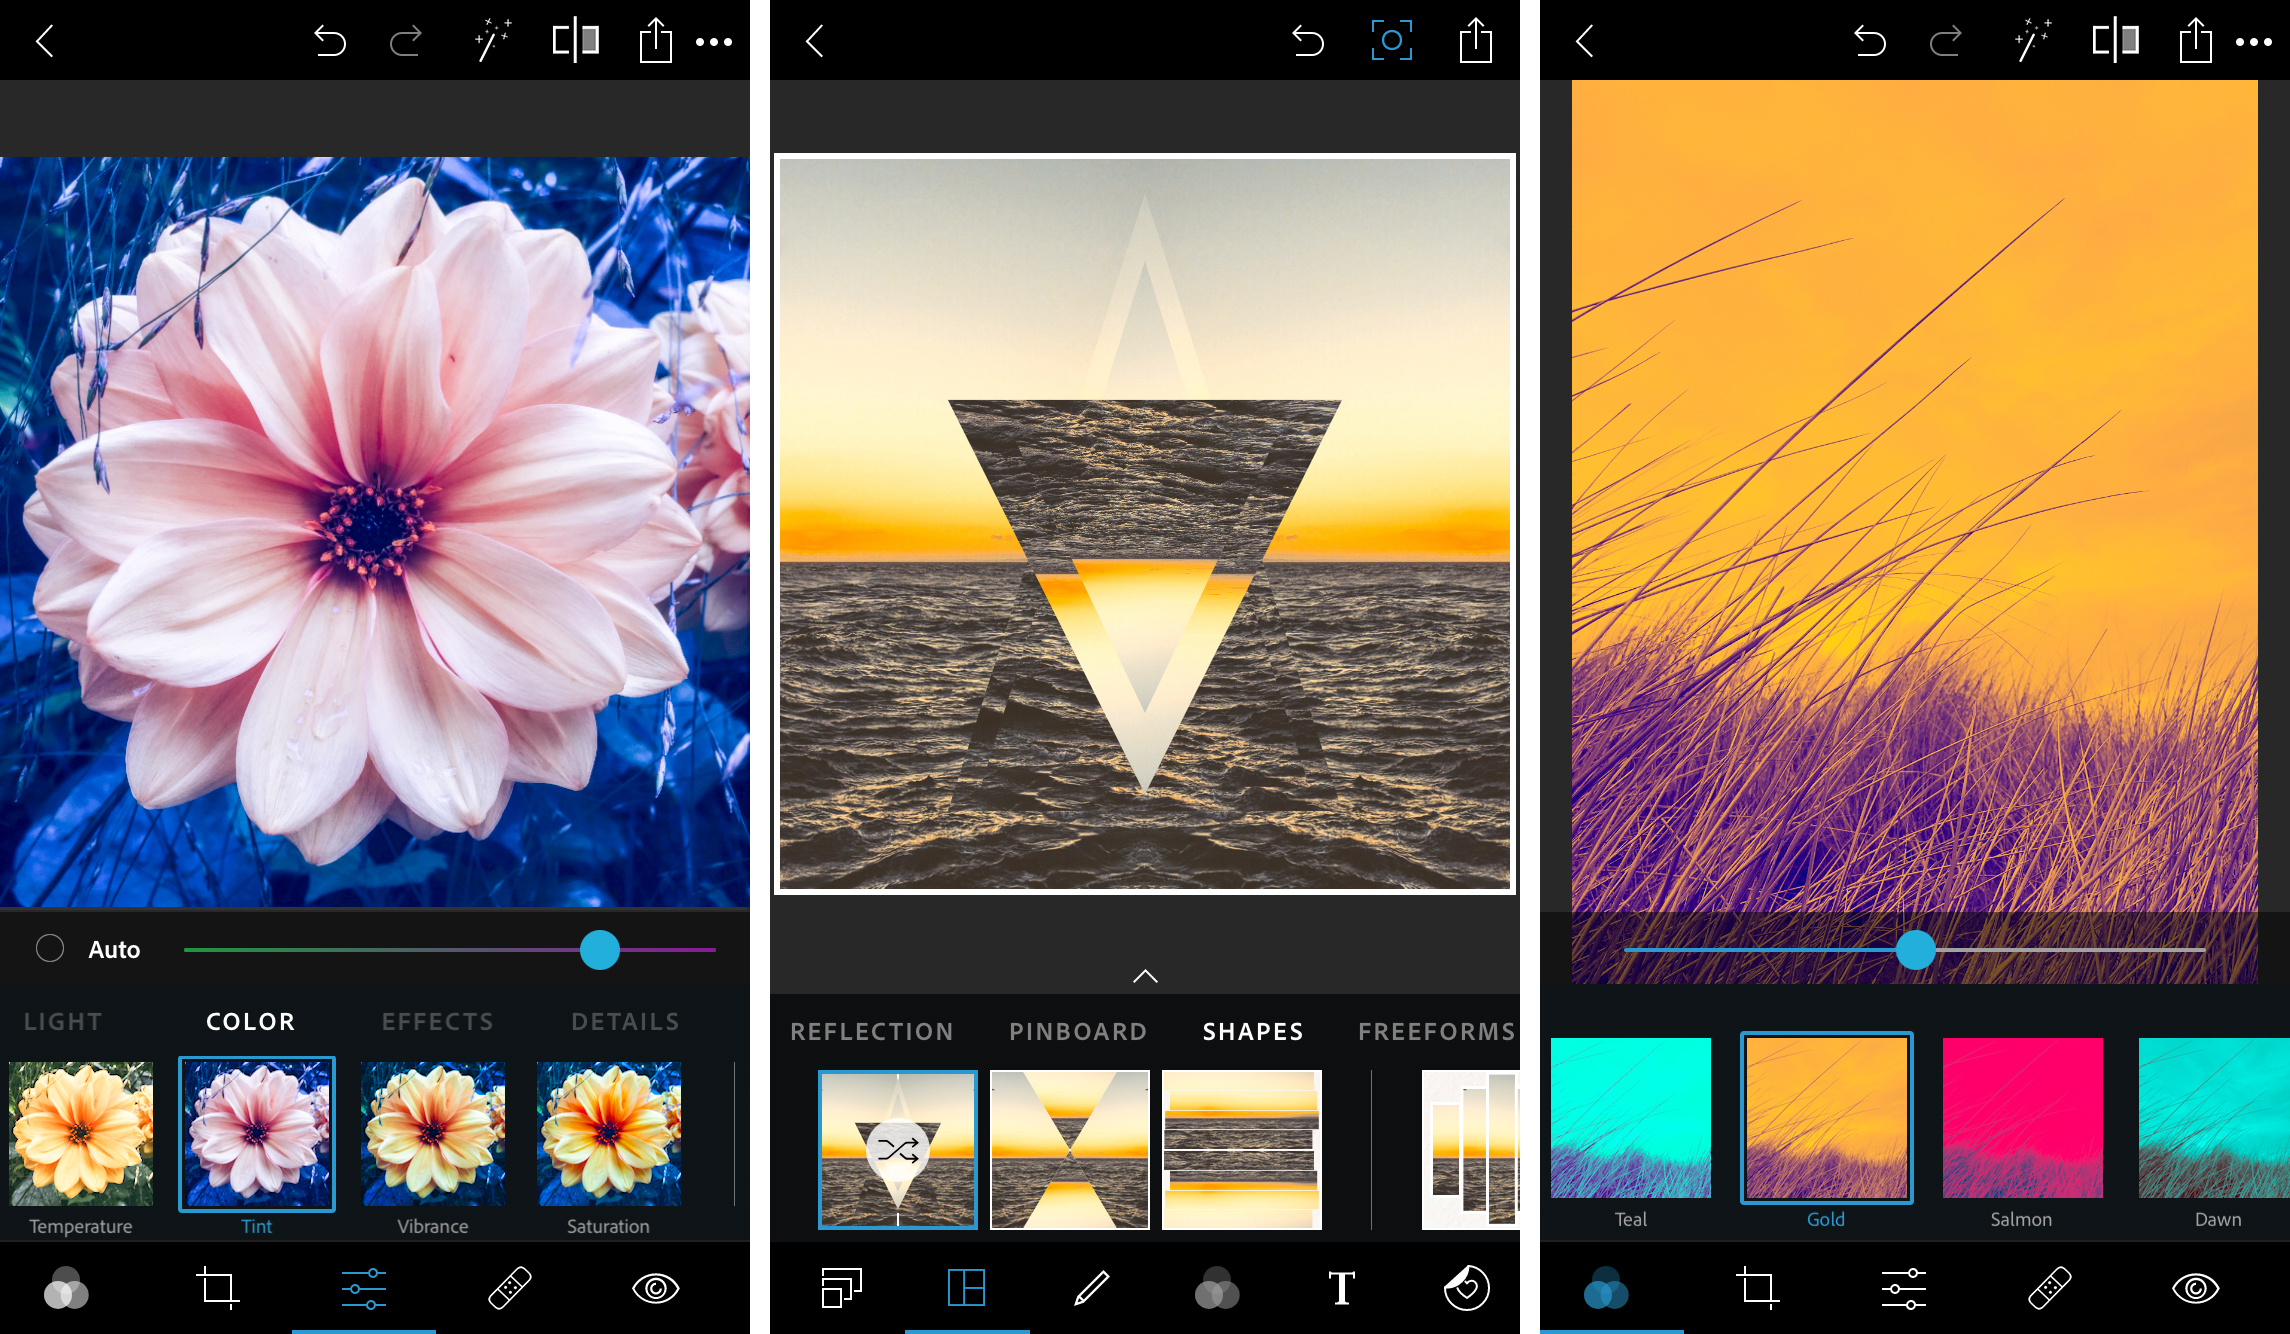 Come schiarire le foto sfocate su iOS e Android Step by Step 2